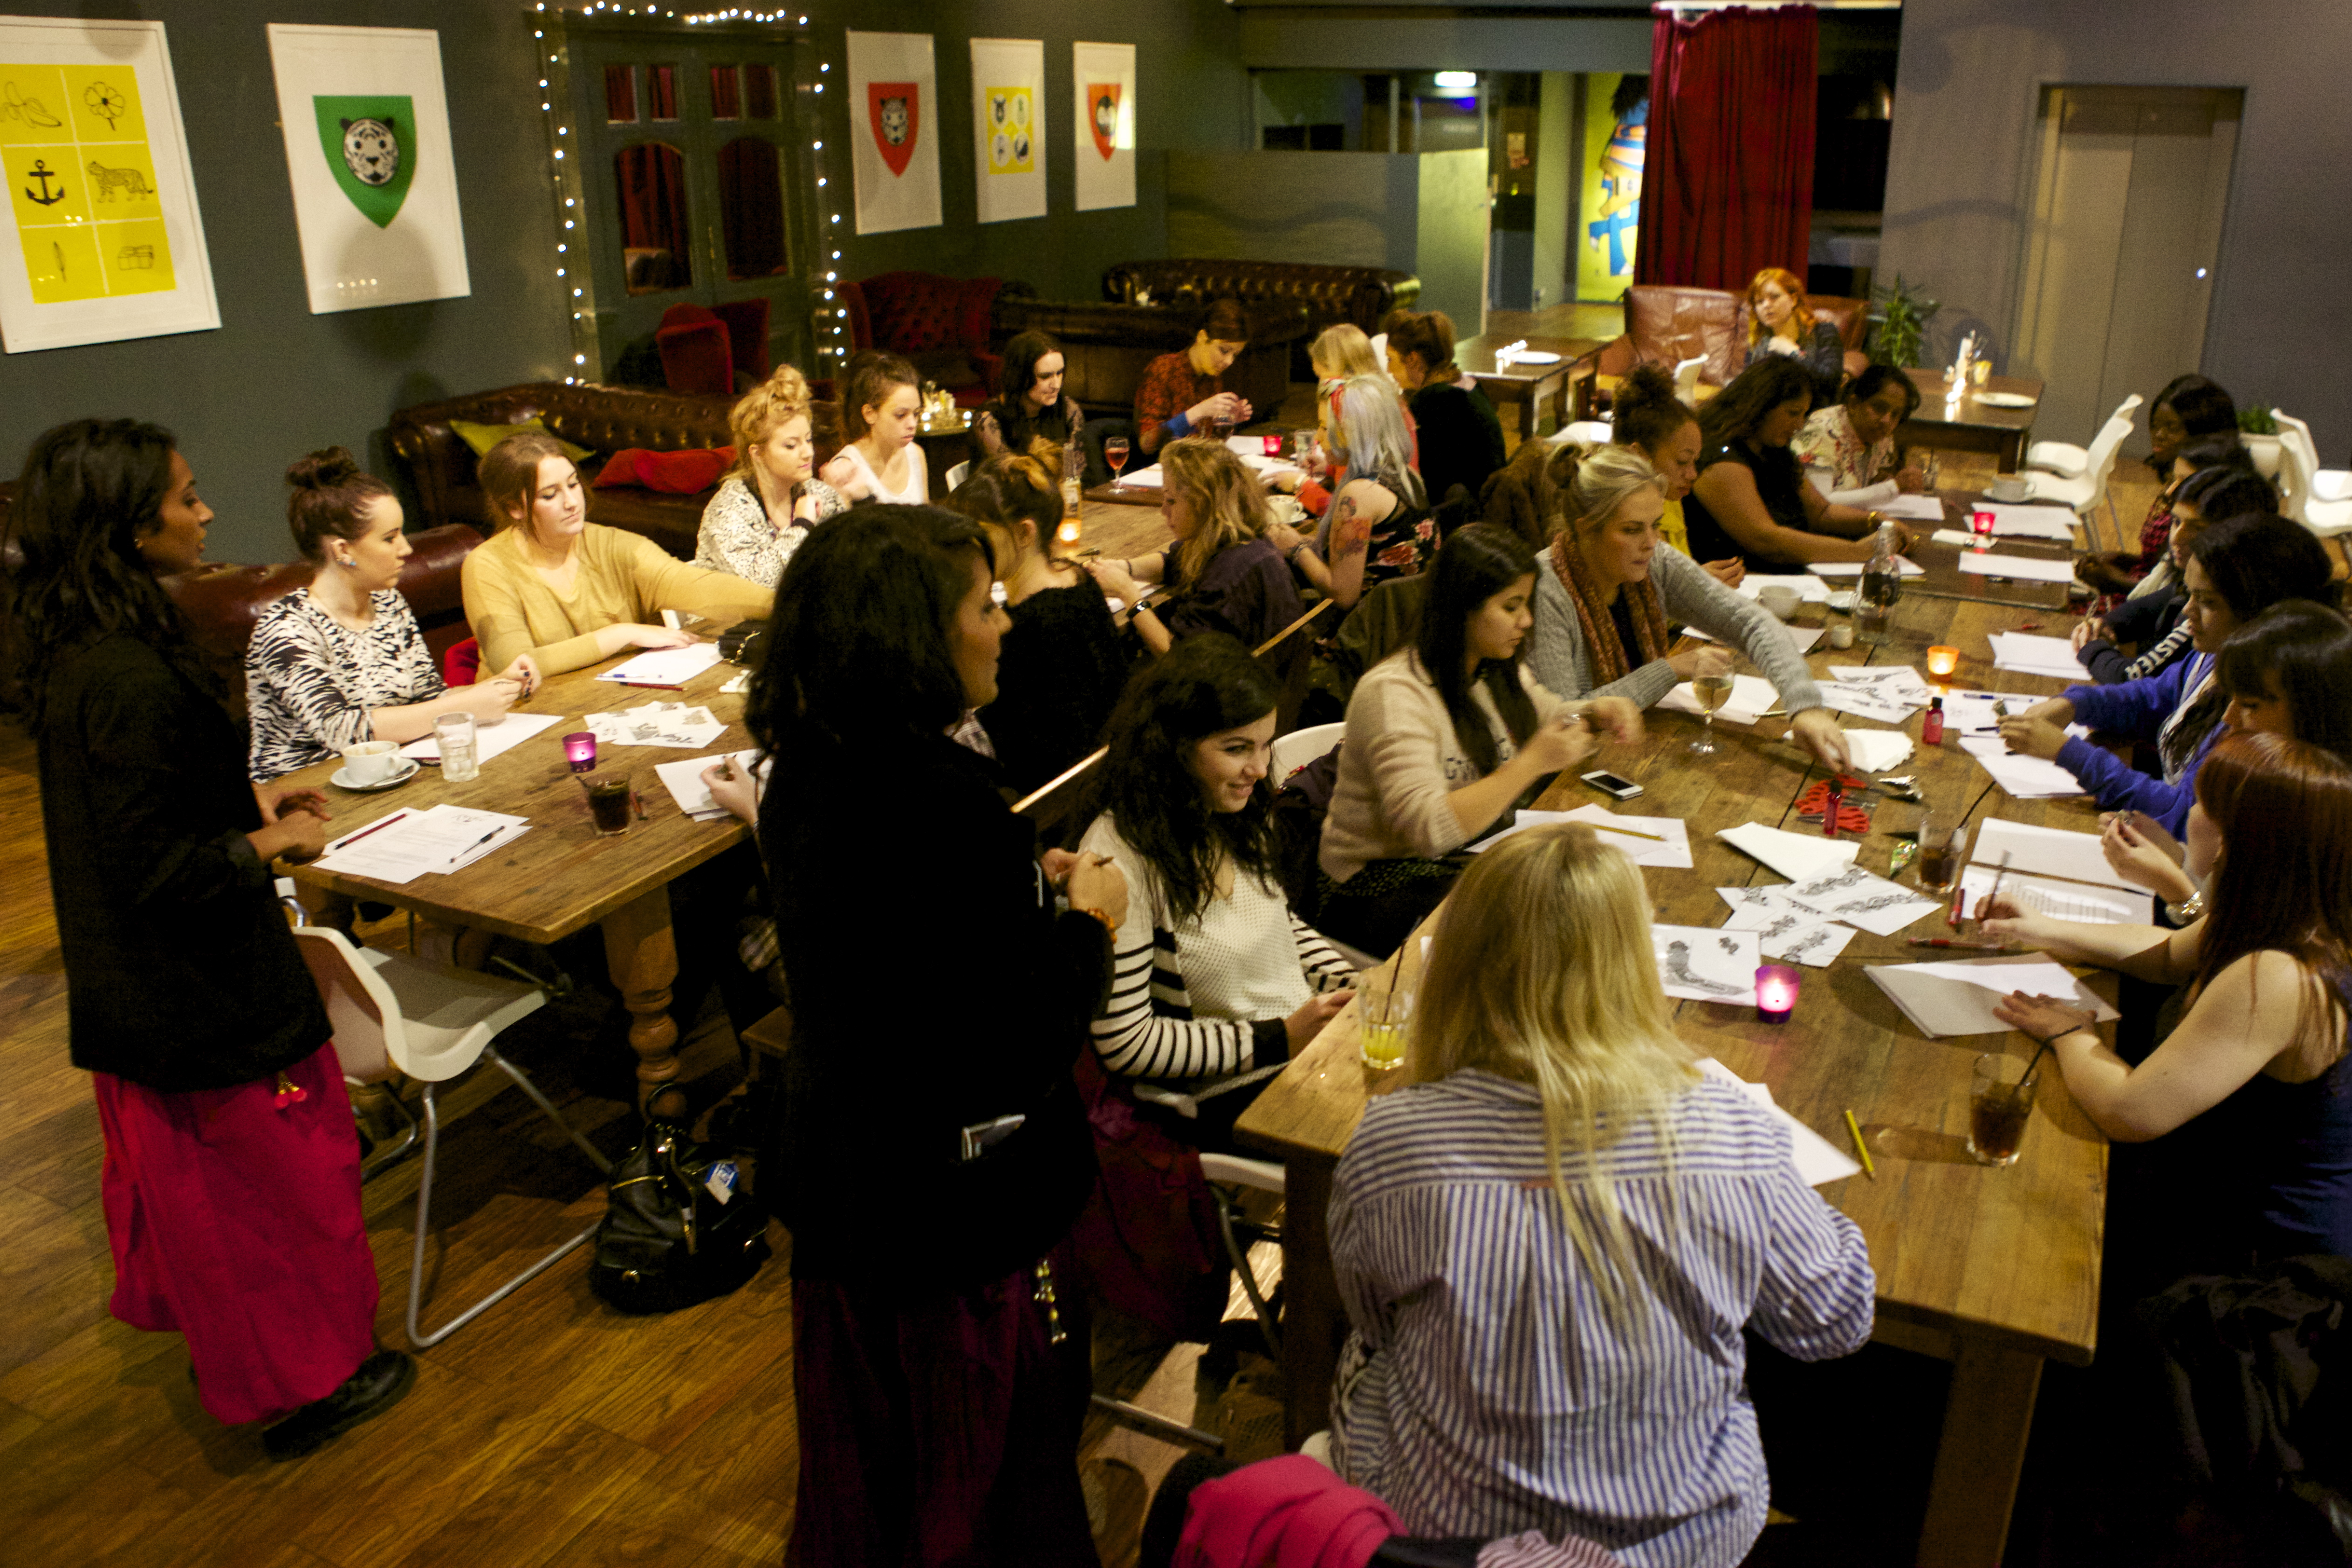 Beginners Henna Painting Workshop by RuShee - mindfulness-and-wellbeing in London